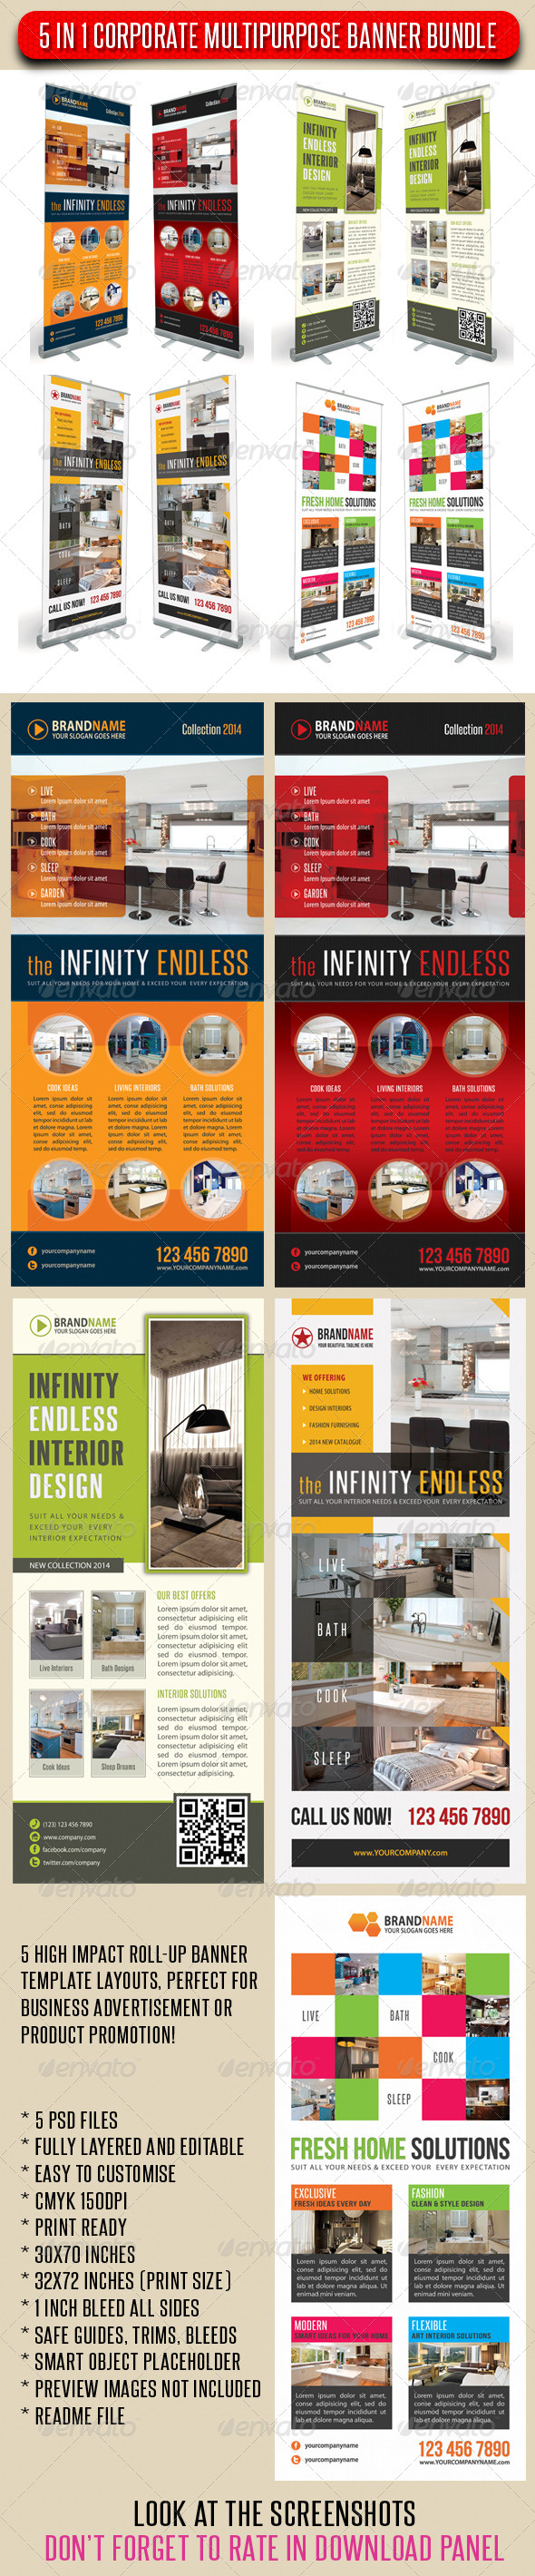 5 in 1 Corporate Multipurpose Banner Bundle 08